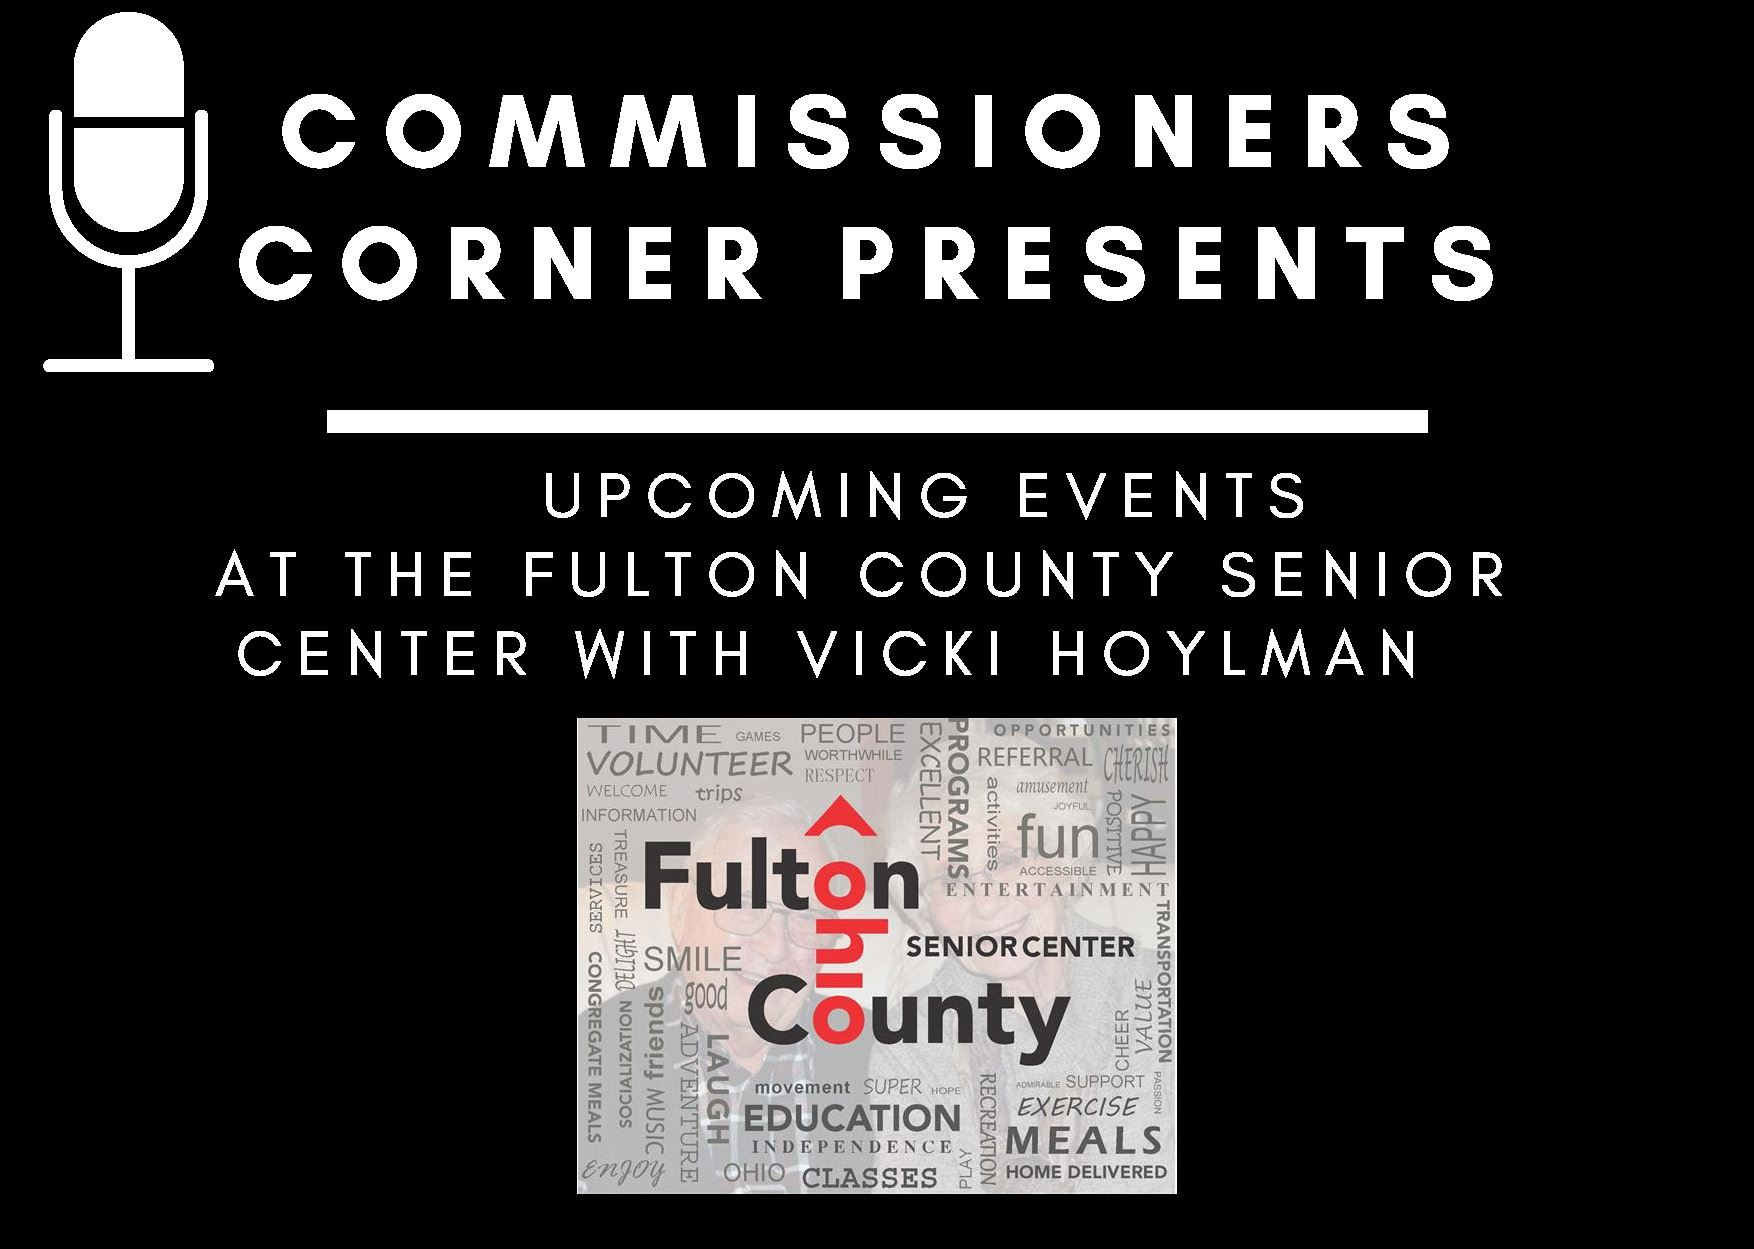 Commissioners Corner Interview with the Fulton County Senior Center Promotional Image